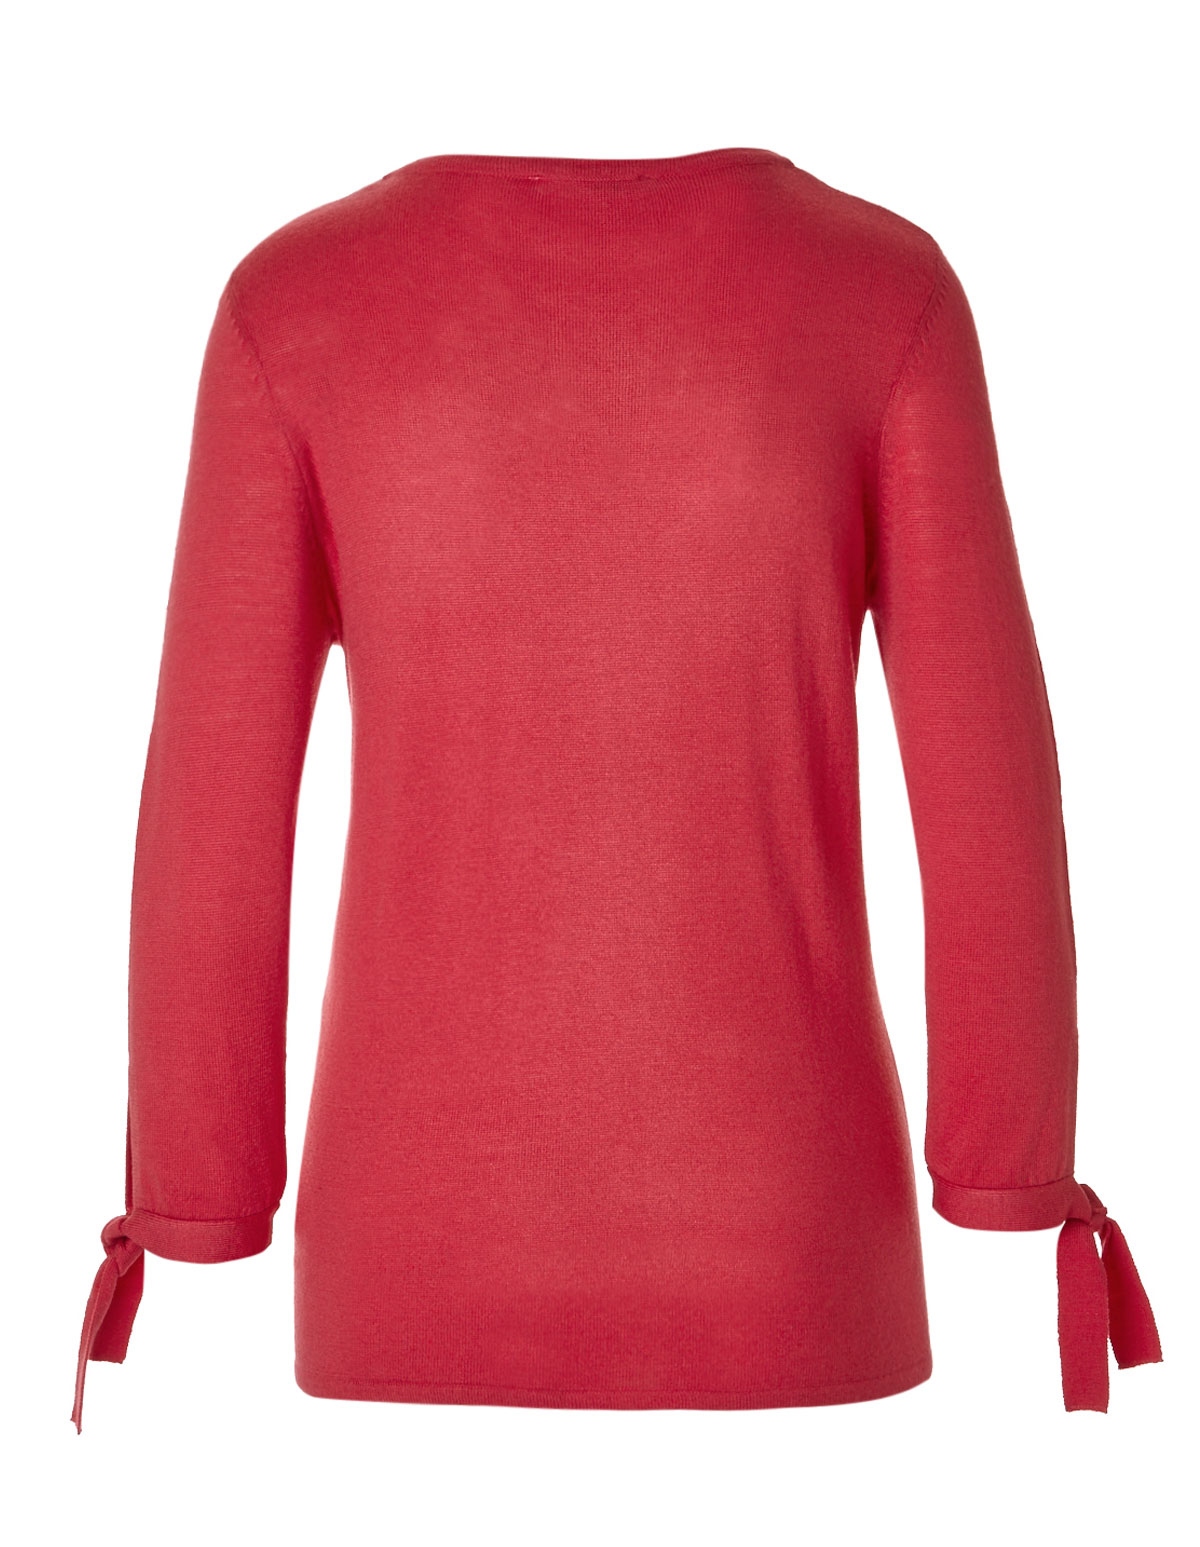 Fresh Pink Tie Pullover Sweater   Cleo